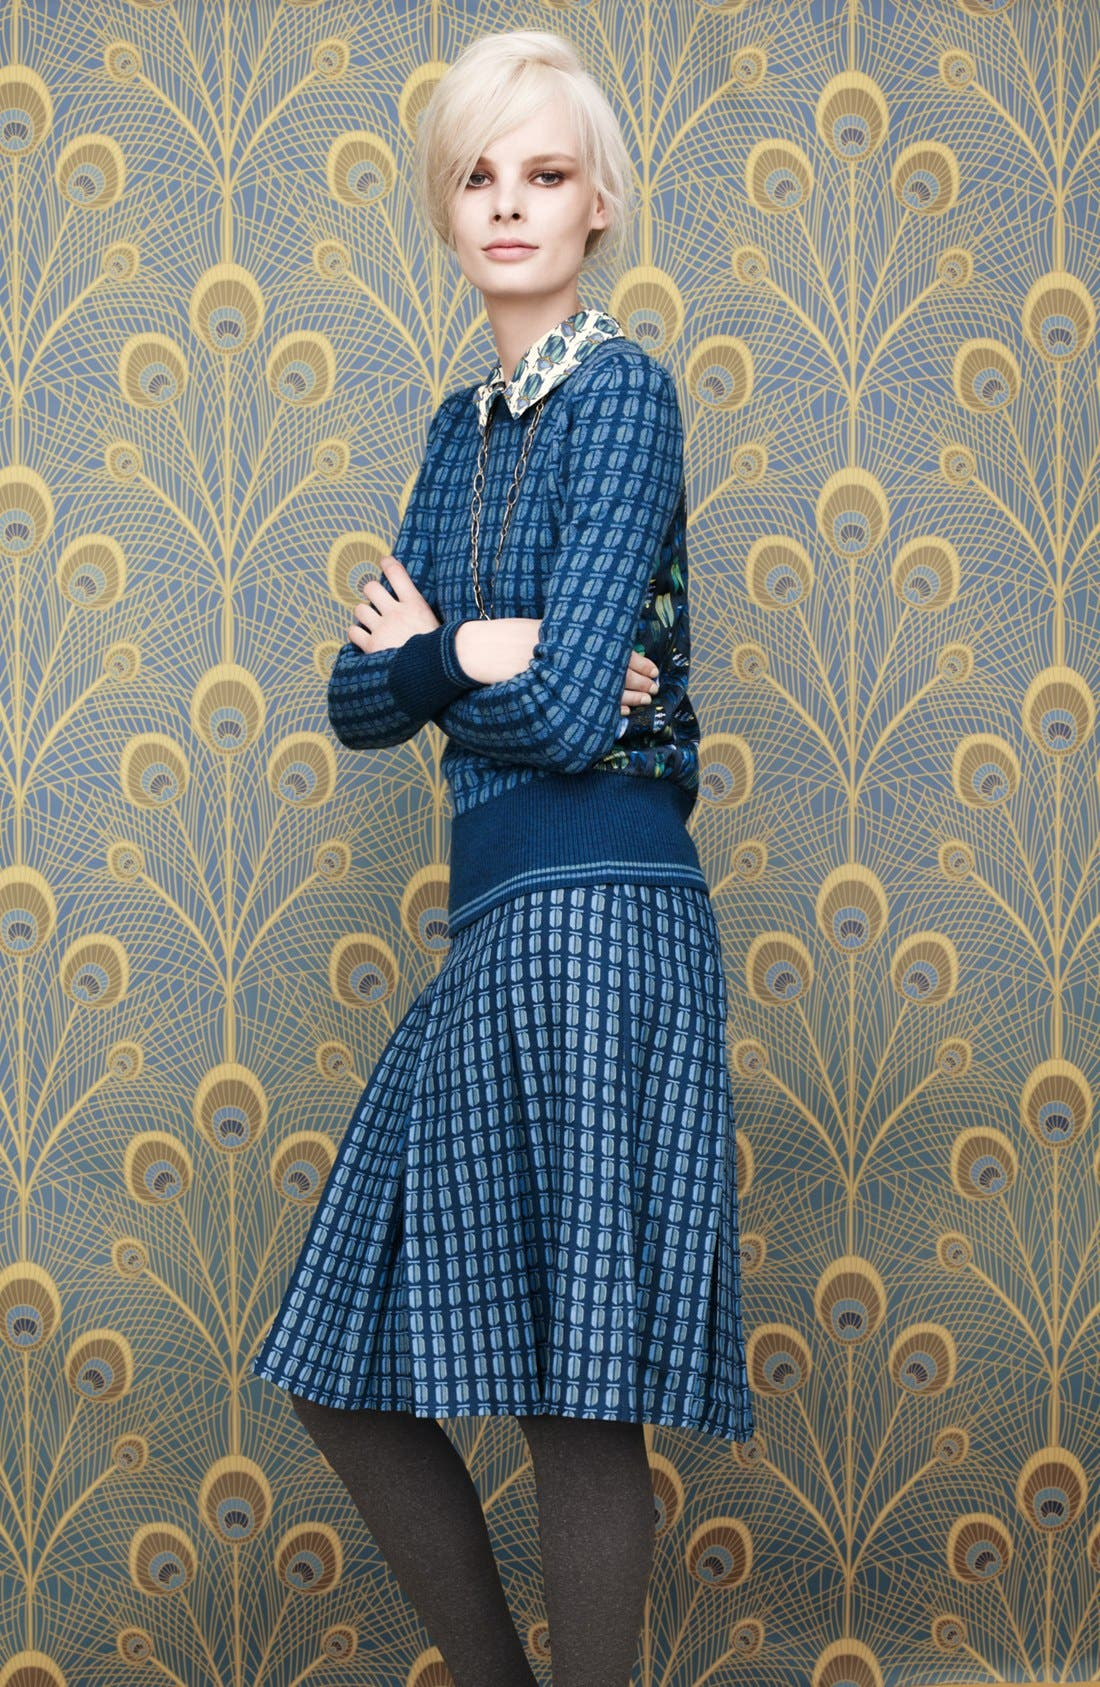 Alternate Image 1 Selected - Tory Burch Sweater, Blouse, Skirt & Pump